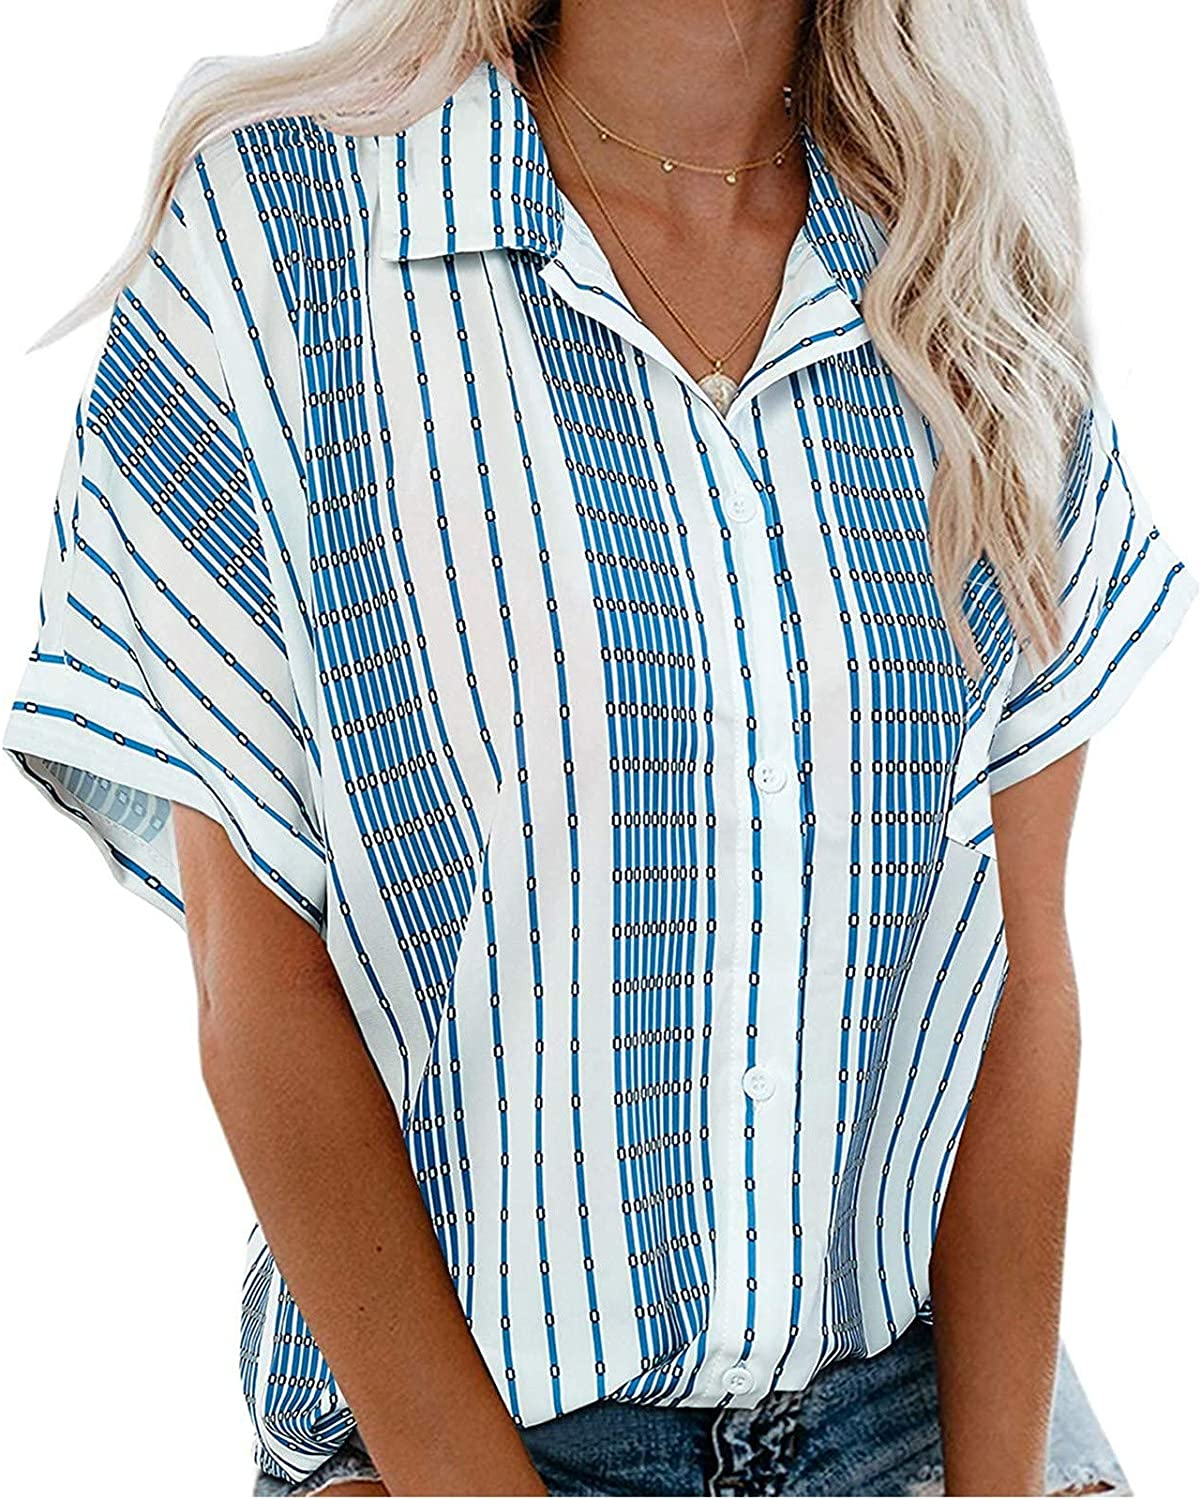 FUNEY Womens Button Down Blouse Shirts Short Sleeve V Neck Casual Loose Collared Tops with Pockets,Summer T Shirts(S-3XL)